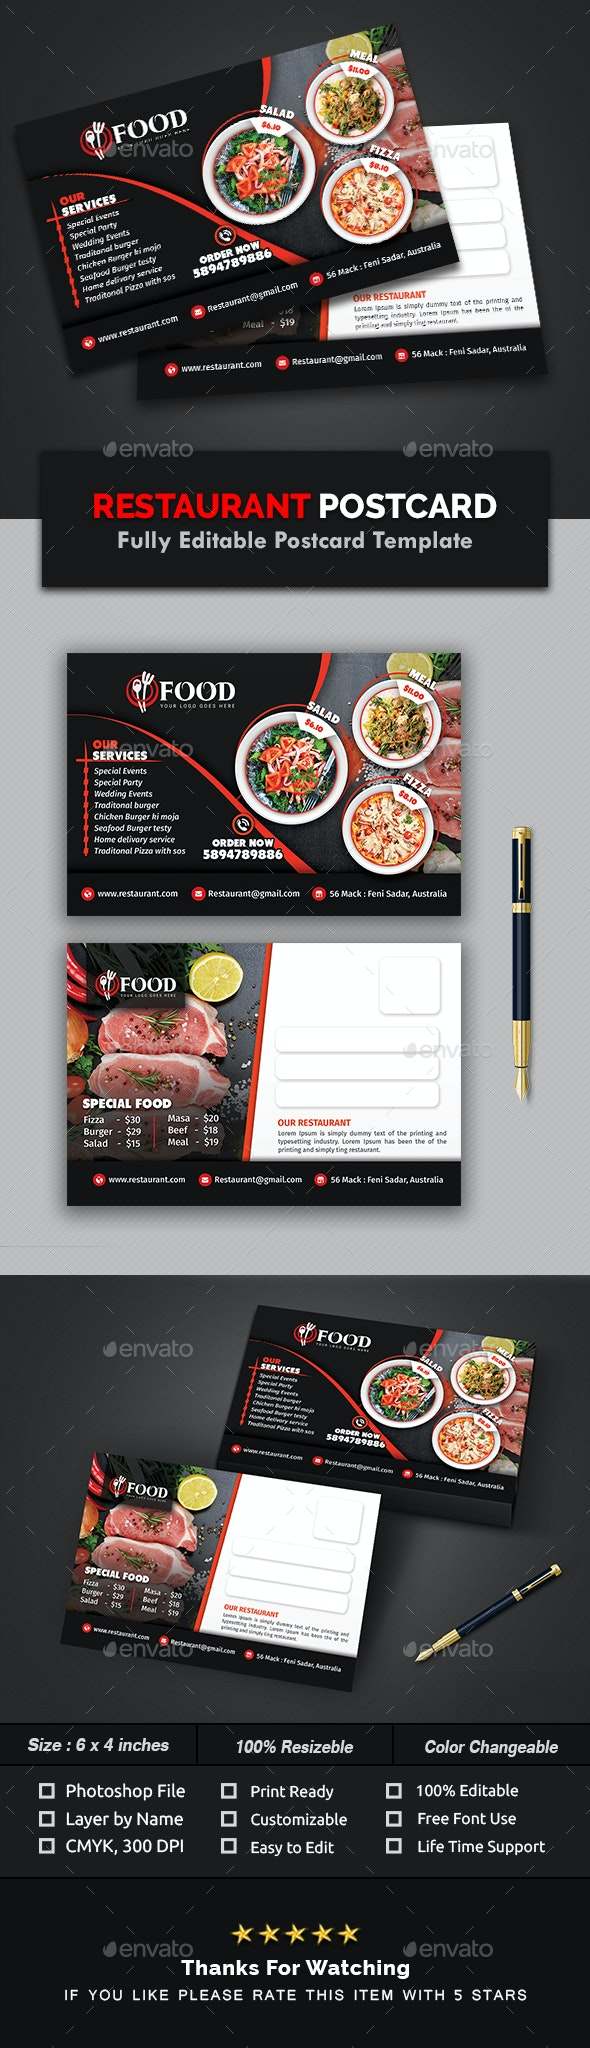 Restaurant Postcard Template - Cards & Invites Print Templates